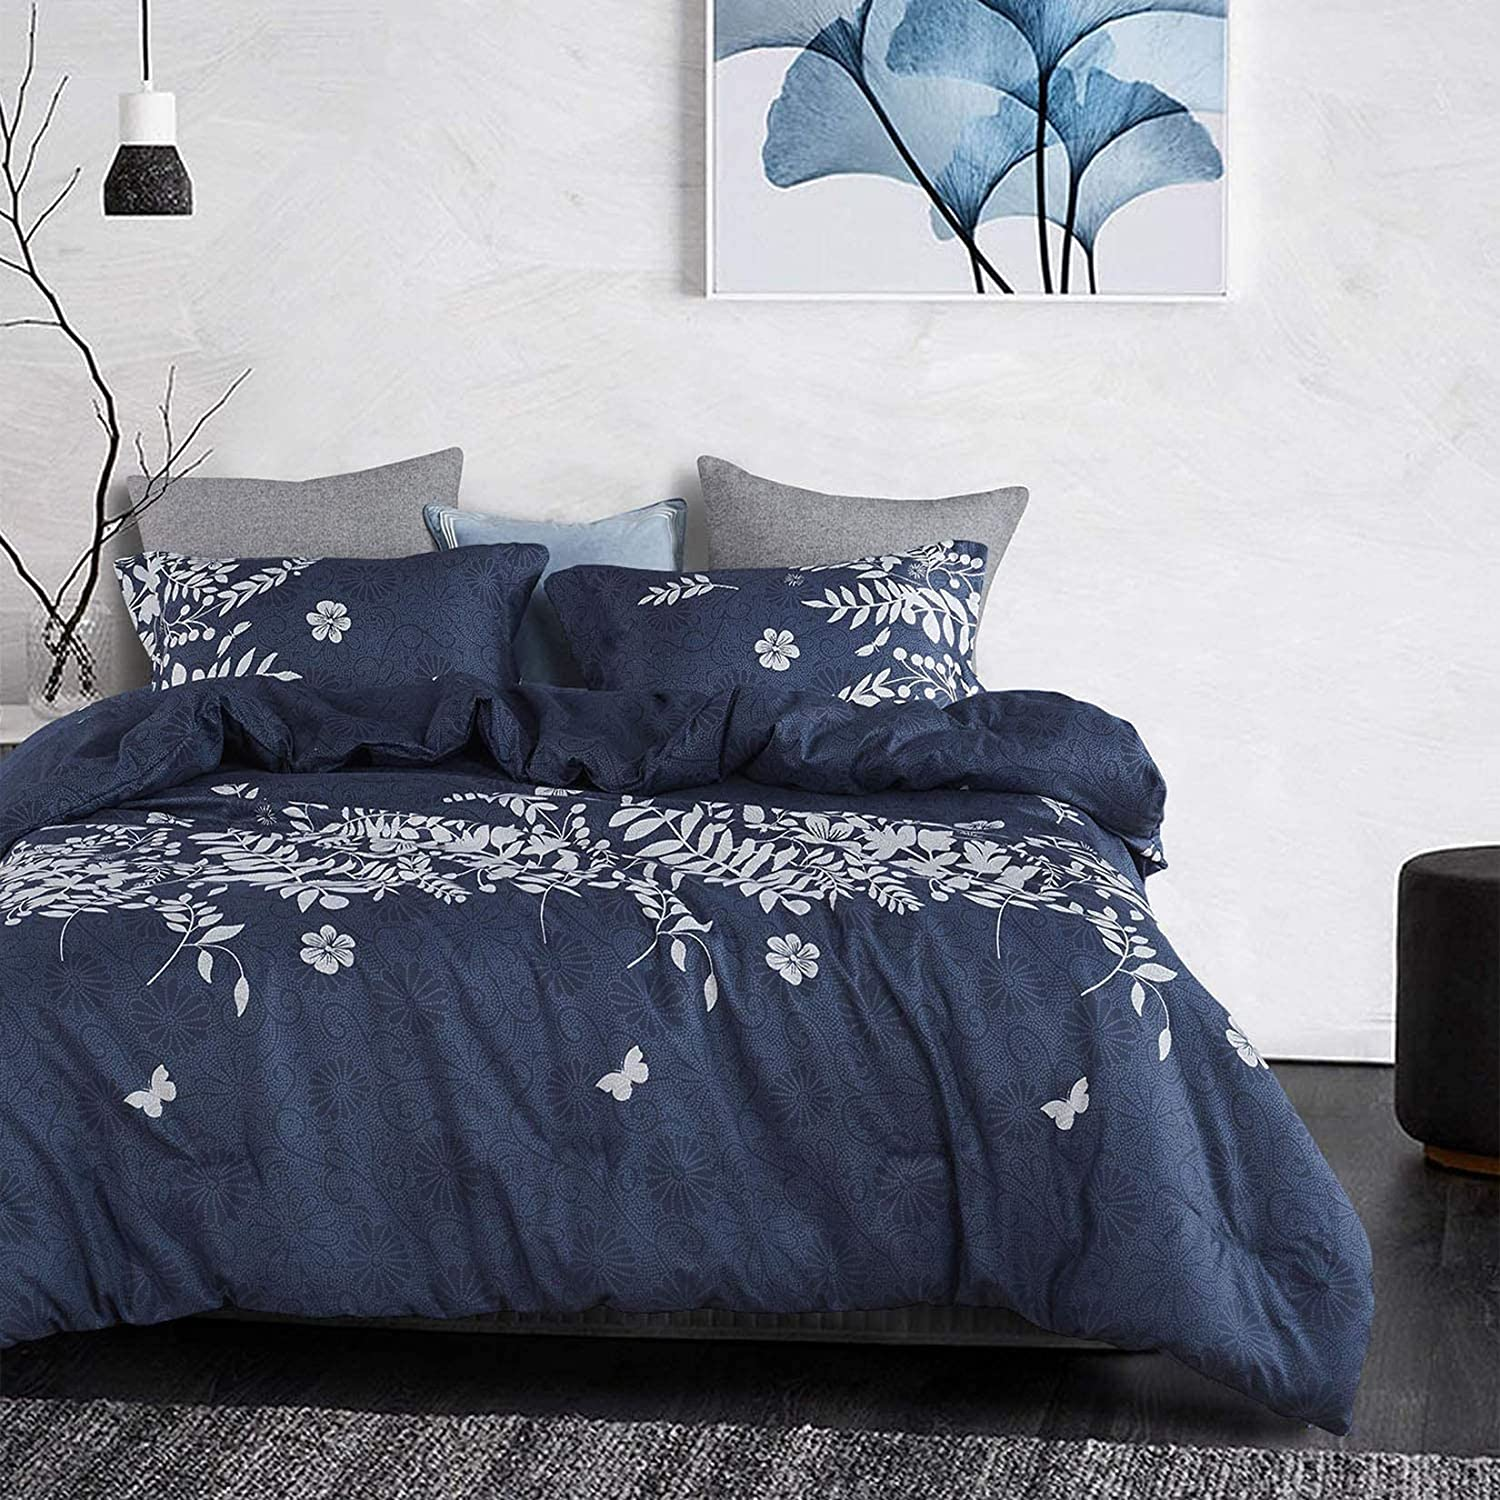 Wake In Cloud - 3pcs Navy Blue Duvet Cover Set, Gray/Grey Floral/Flowers Leaves Pattern Printed, Soft Microfiber Bedding (California/Cal King Size)